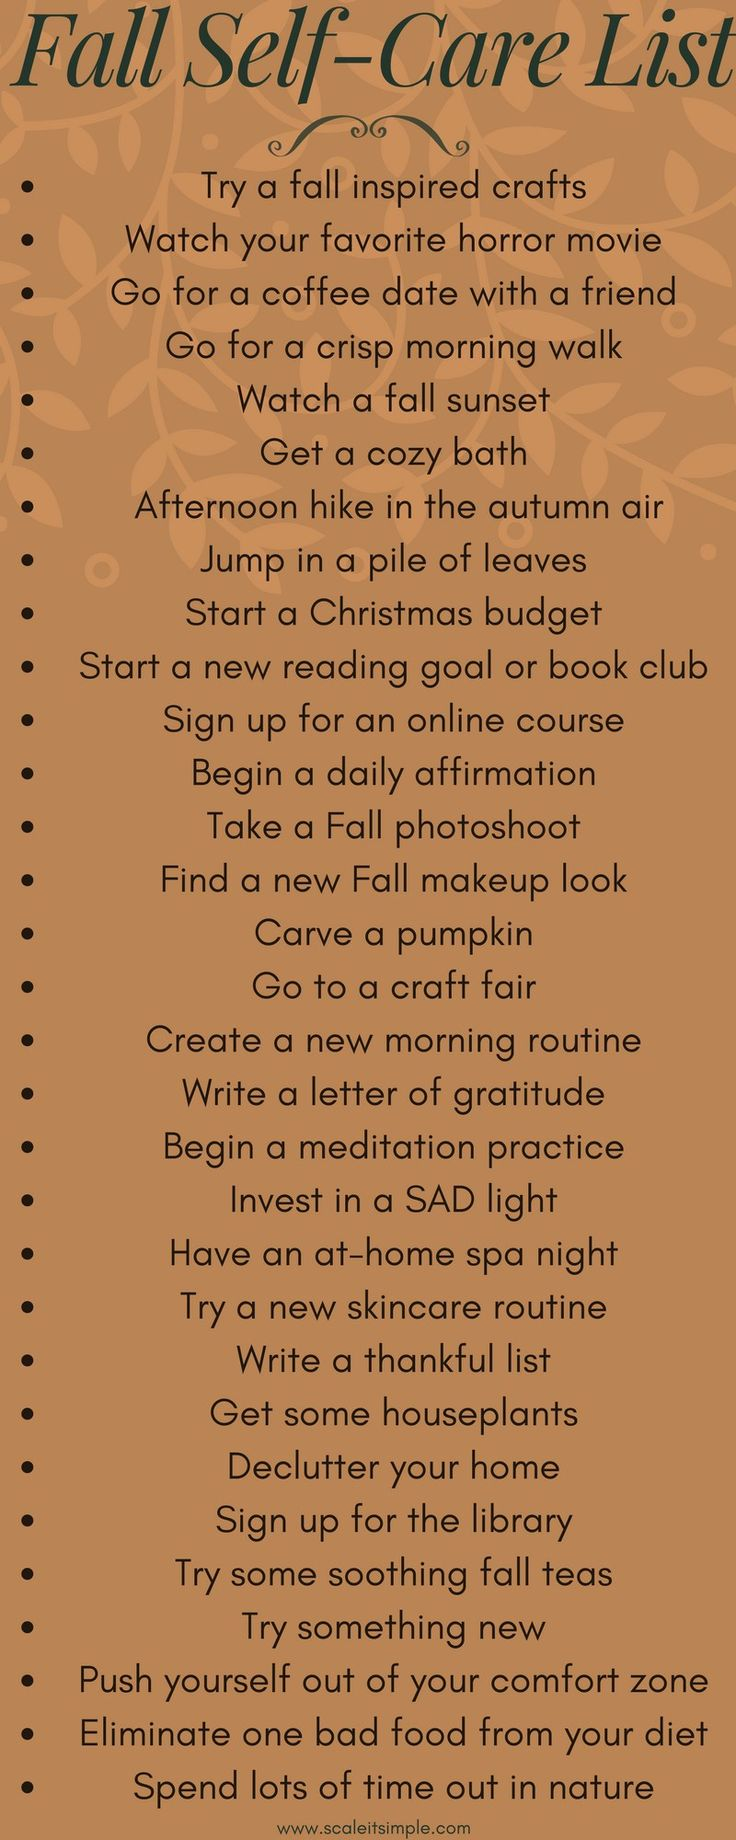 The perfect self-care list for the fall season. Don't forget to take some time for yourself and practice self-care, use this list to help motivate you.